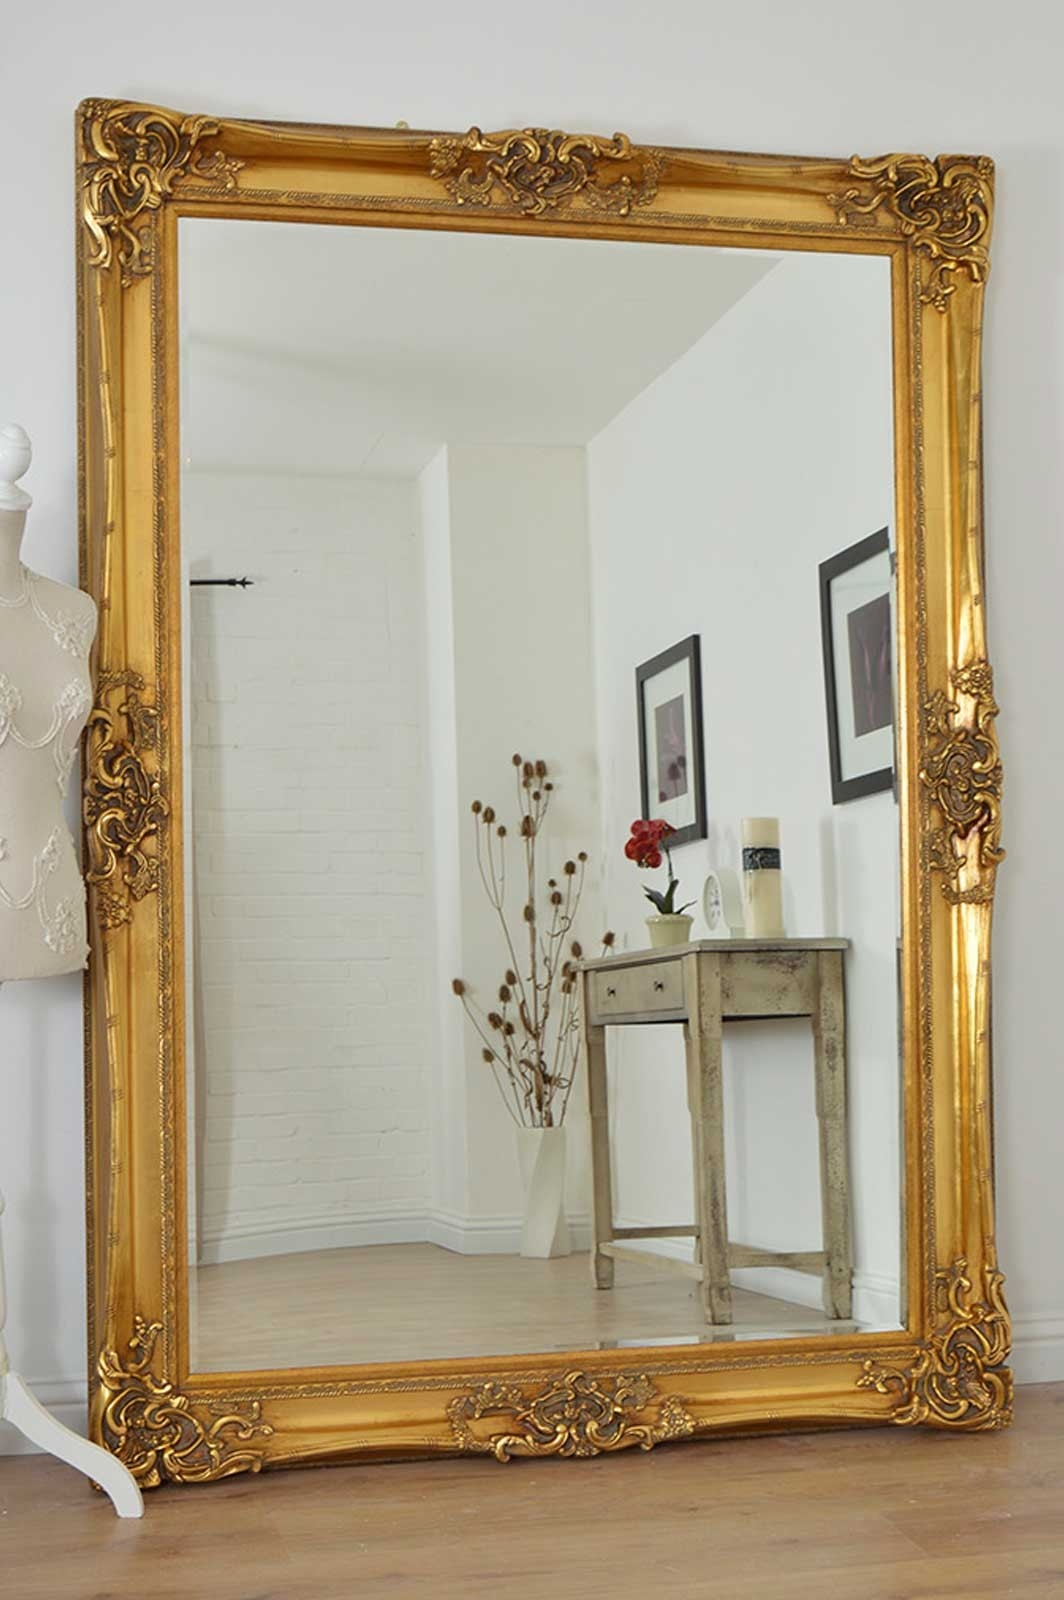 Large Gold Very Ornate Antique Design Wall Mirror 7ft X 5ft 213cm With Regard To Very Large Ornate Mirrors (Image 10 of 15)